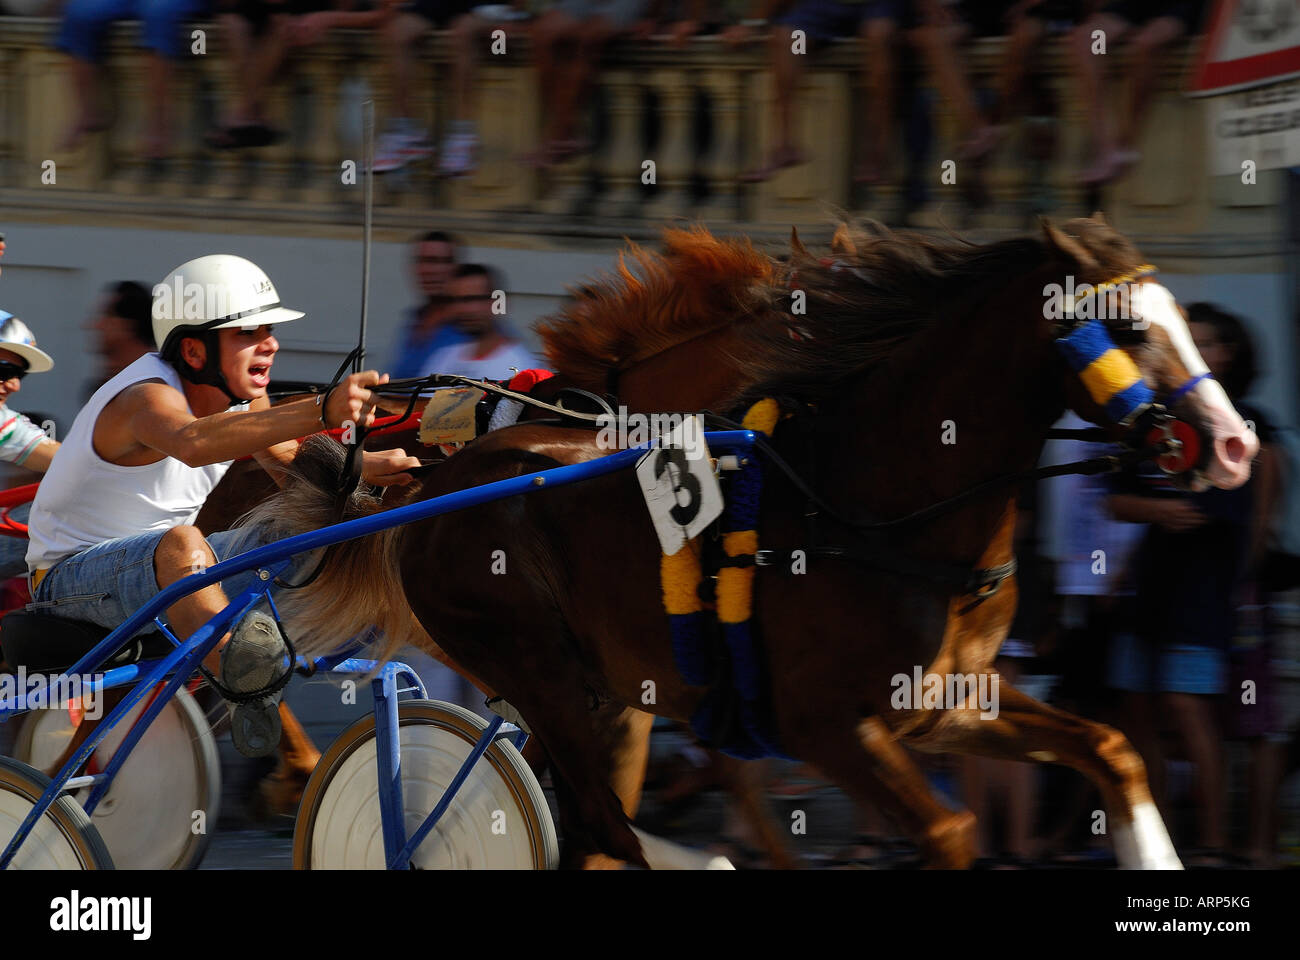 horse race panned to focus on the horse and jockey - Stock Image